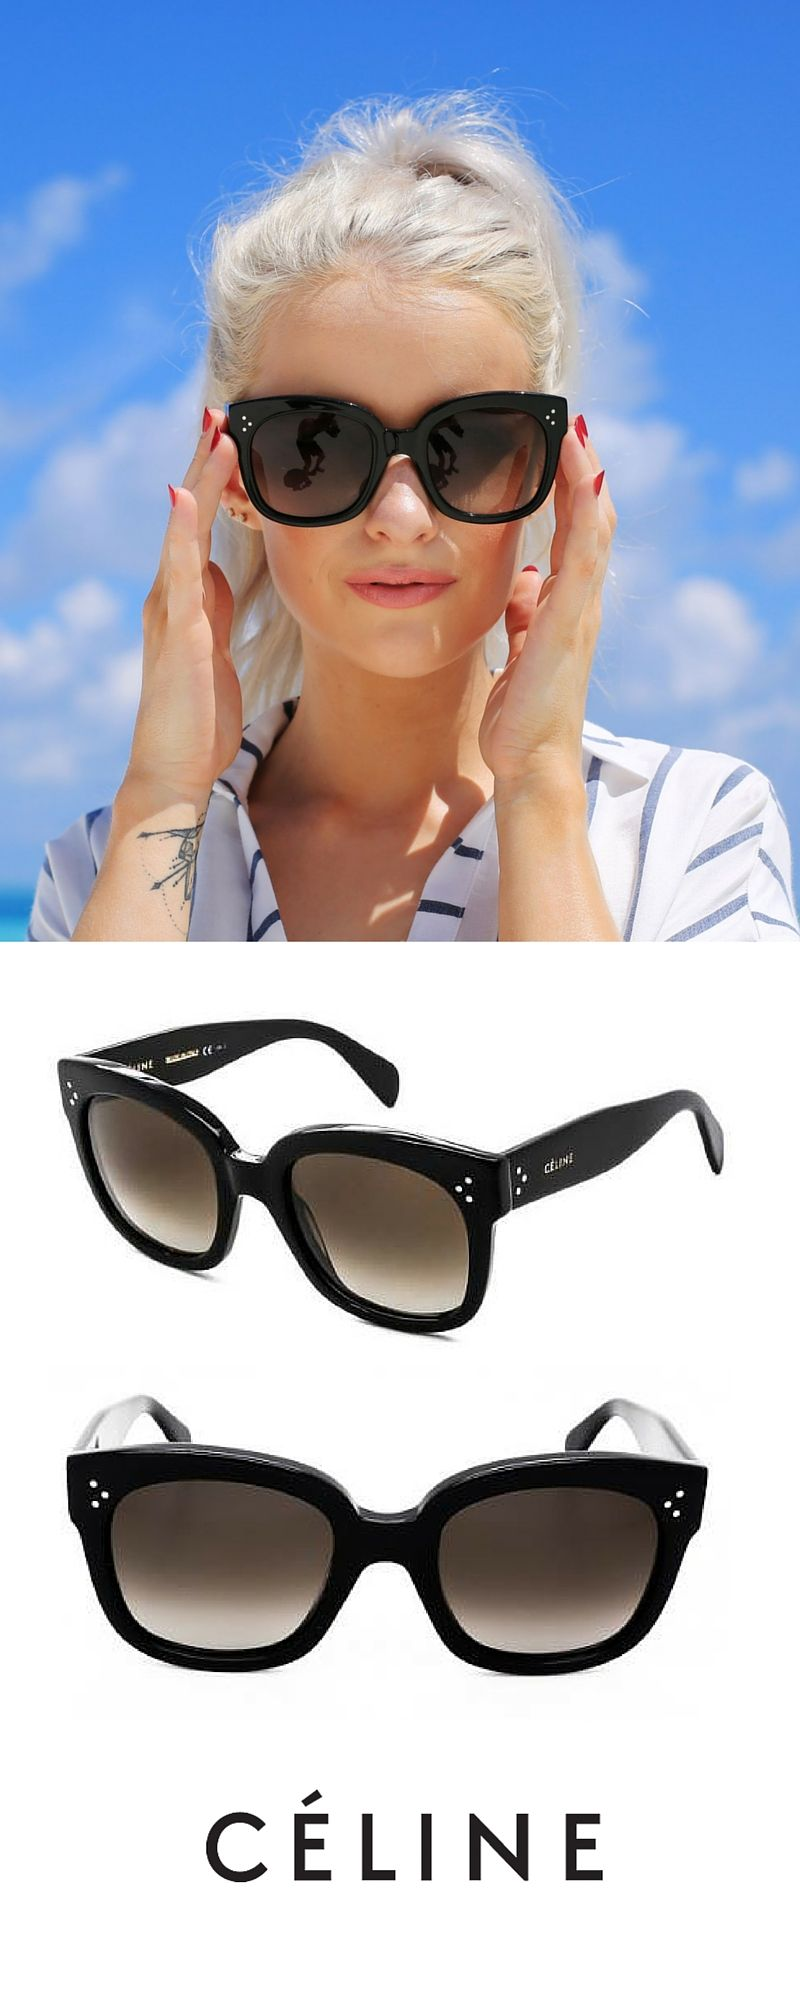 Fashion Sunglasses On Fashion Sunglasses Sunglasses